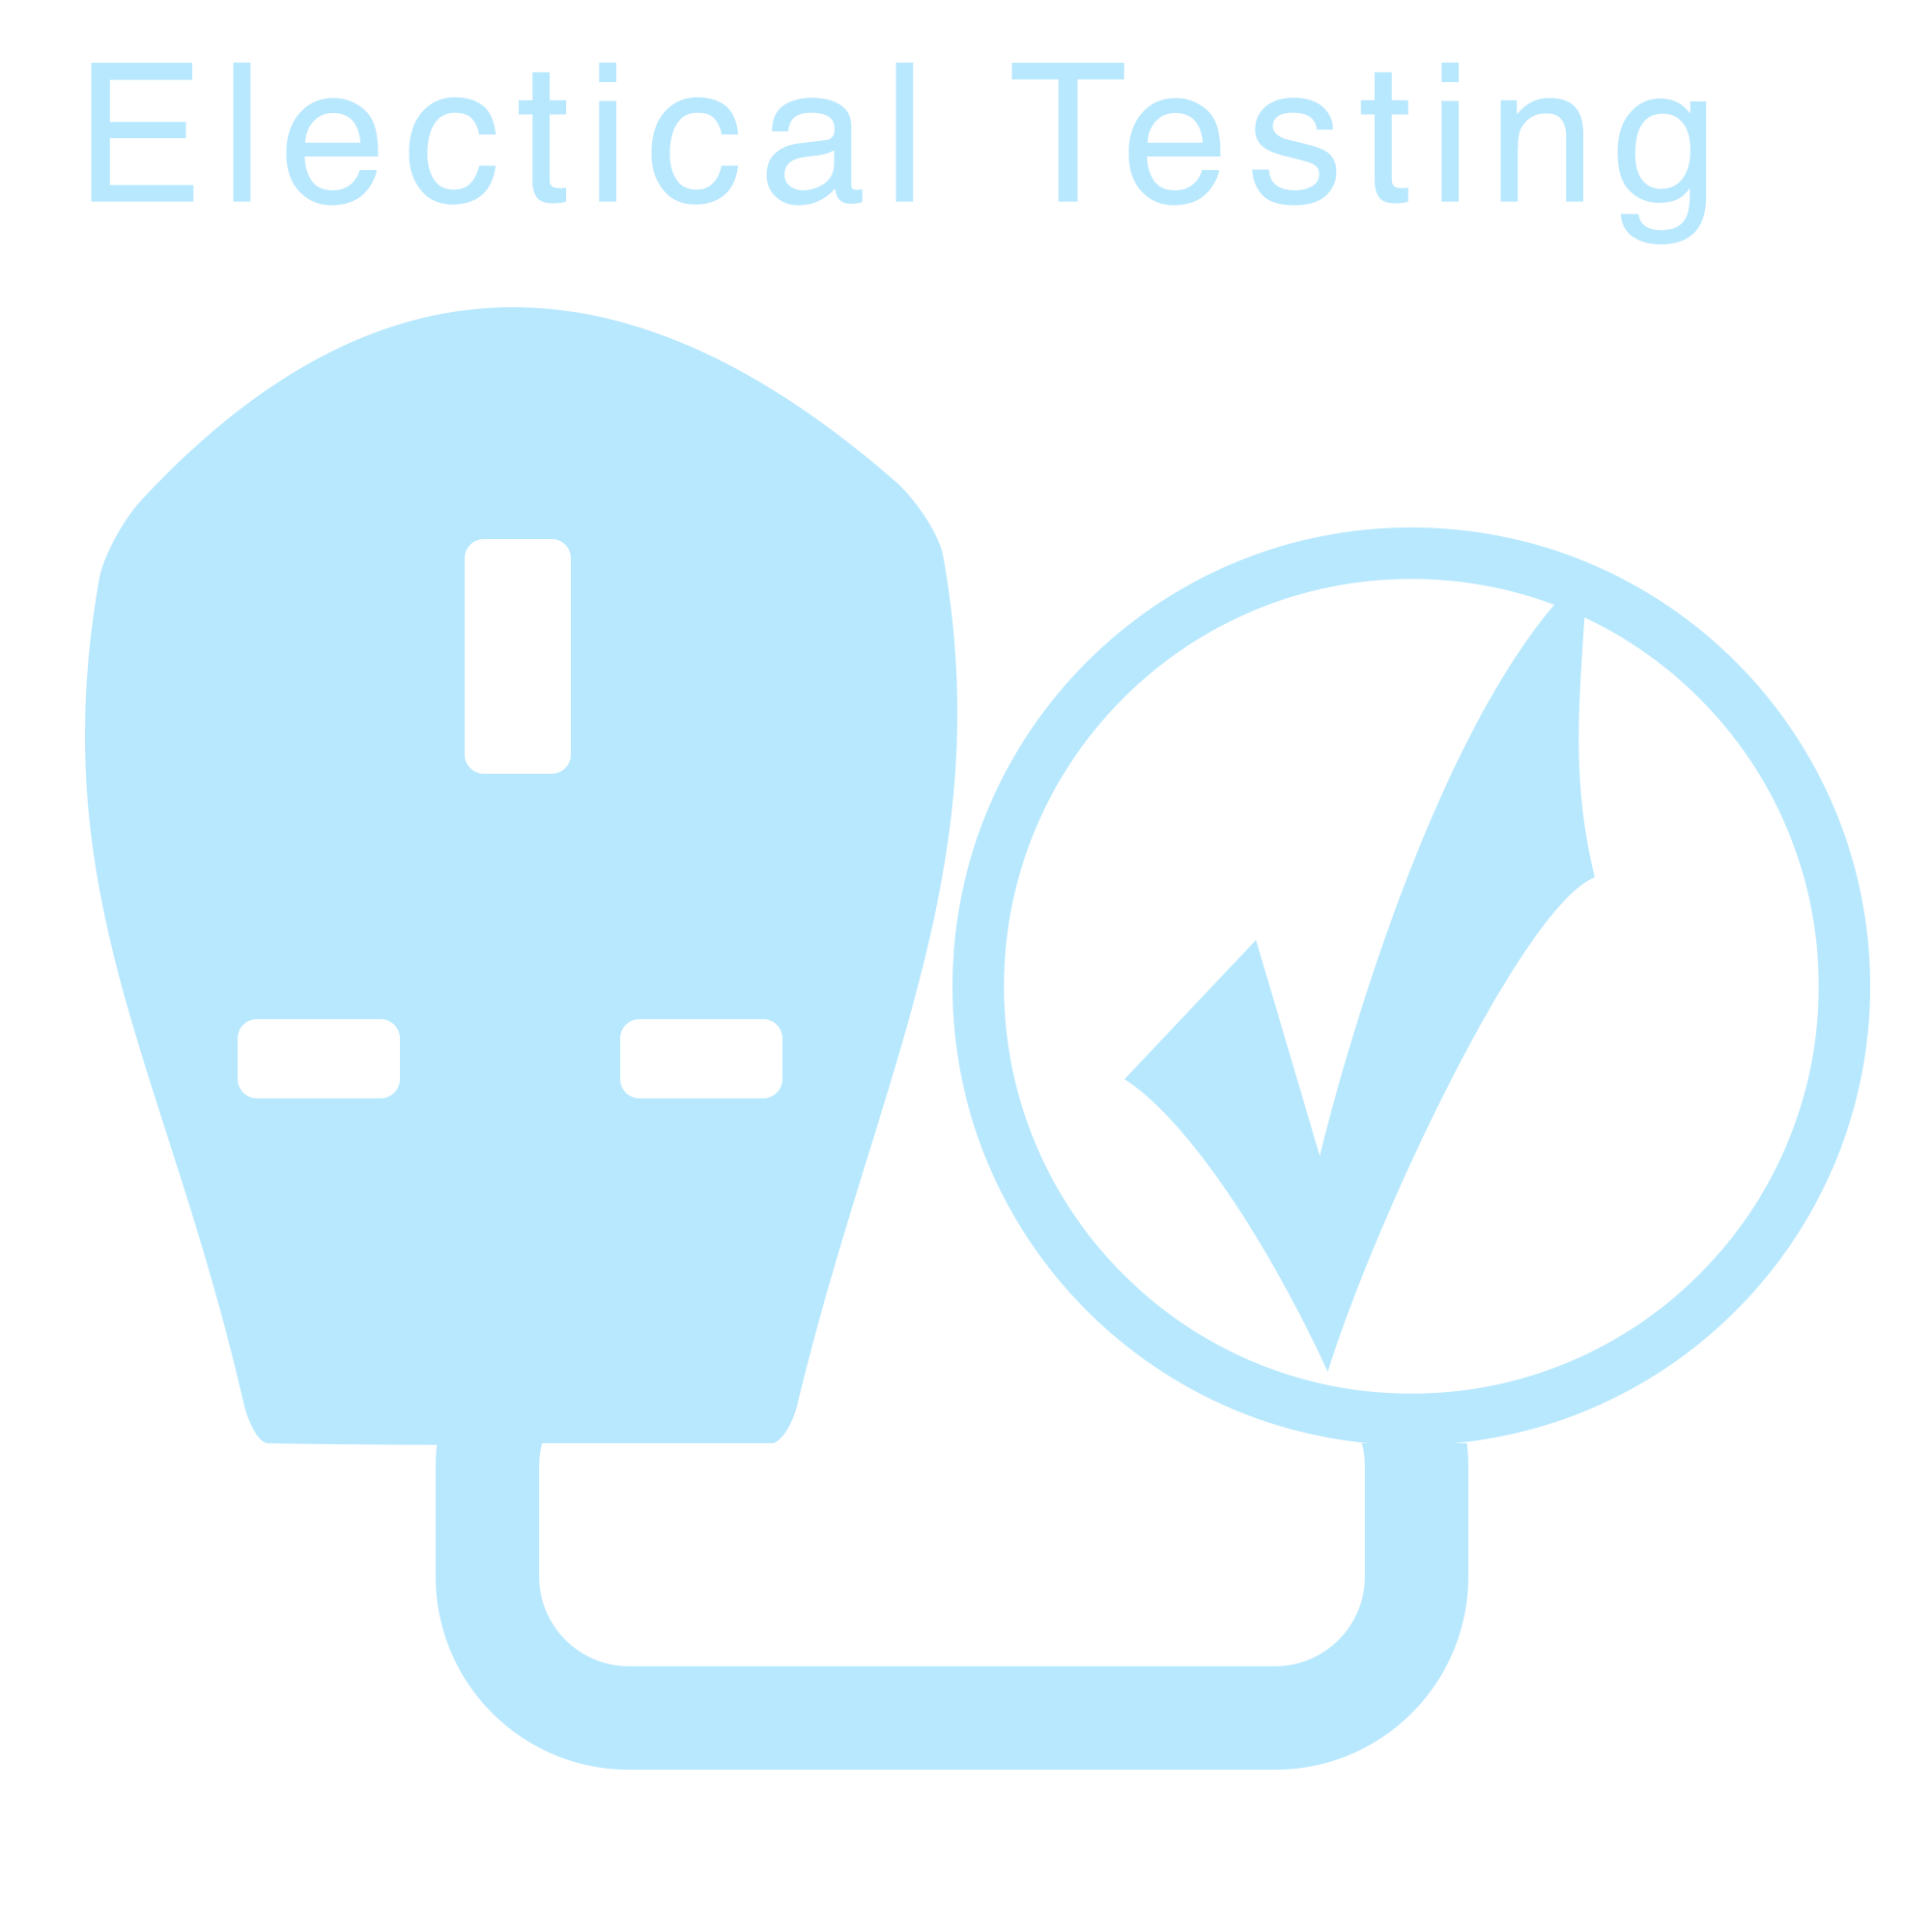 Inspection & Testing (EICR): PAT (Portable Appliance Testing) is a vital part of the Health & Safety responsibility of all businesses.  CIS offers a rapid, reliable and efficient service in or out of business hours.